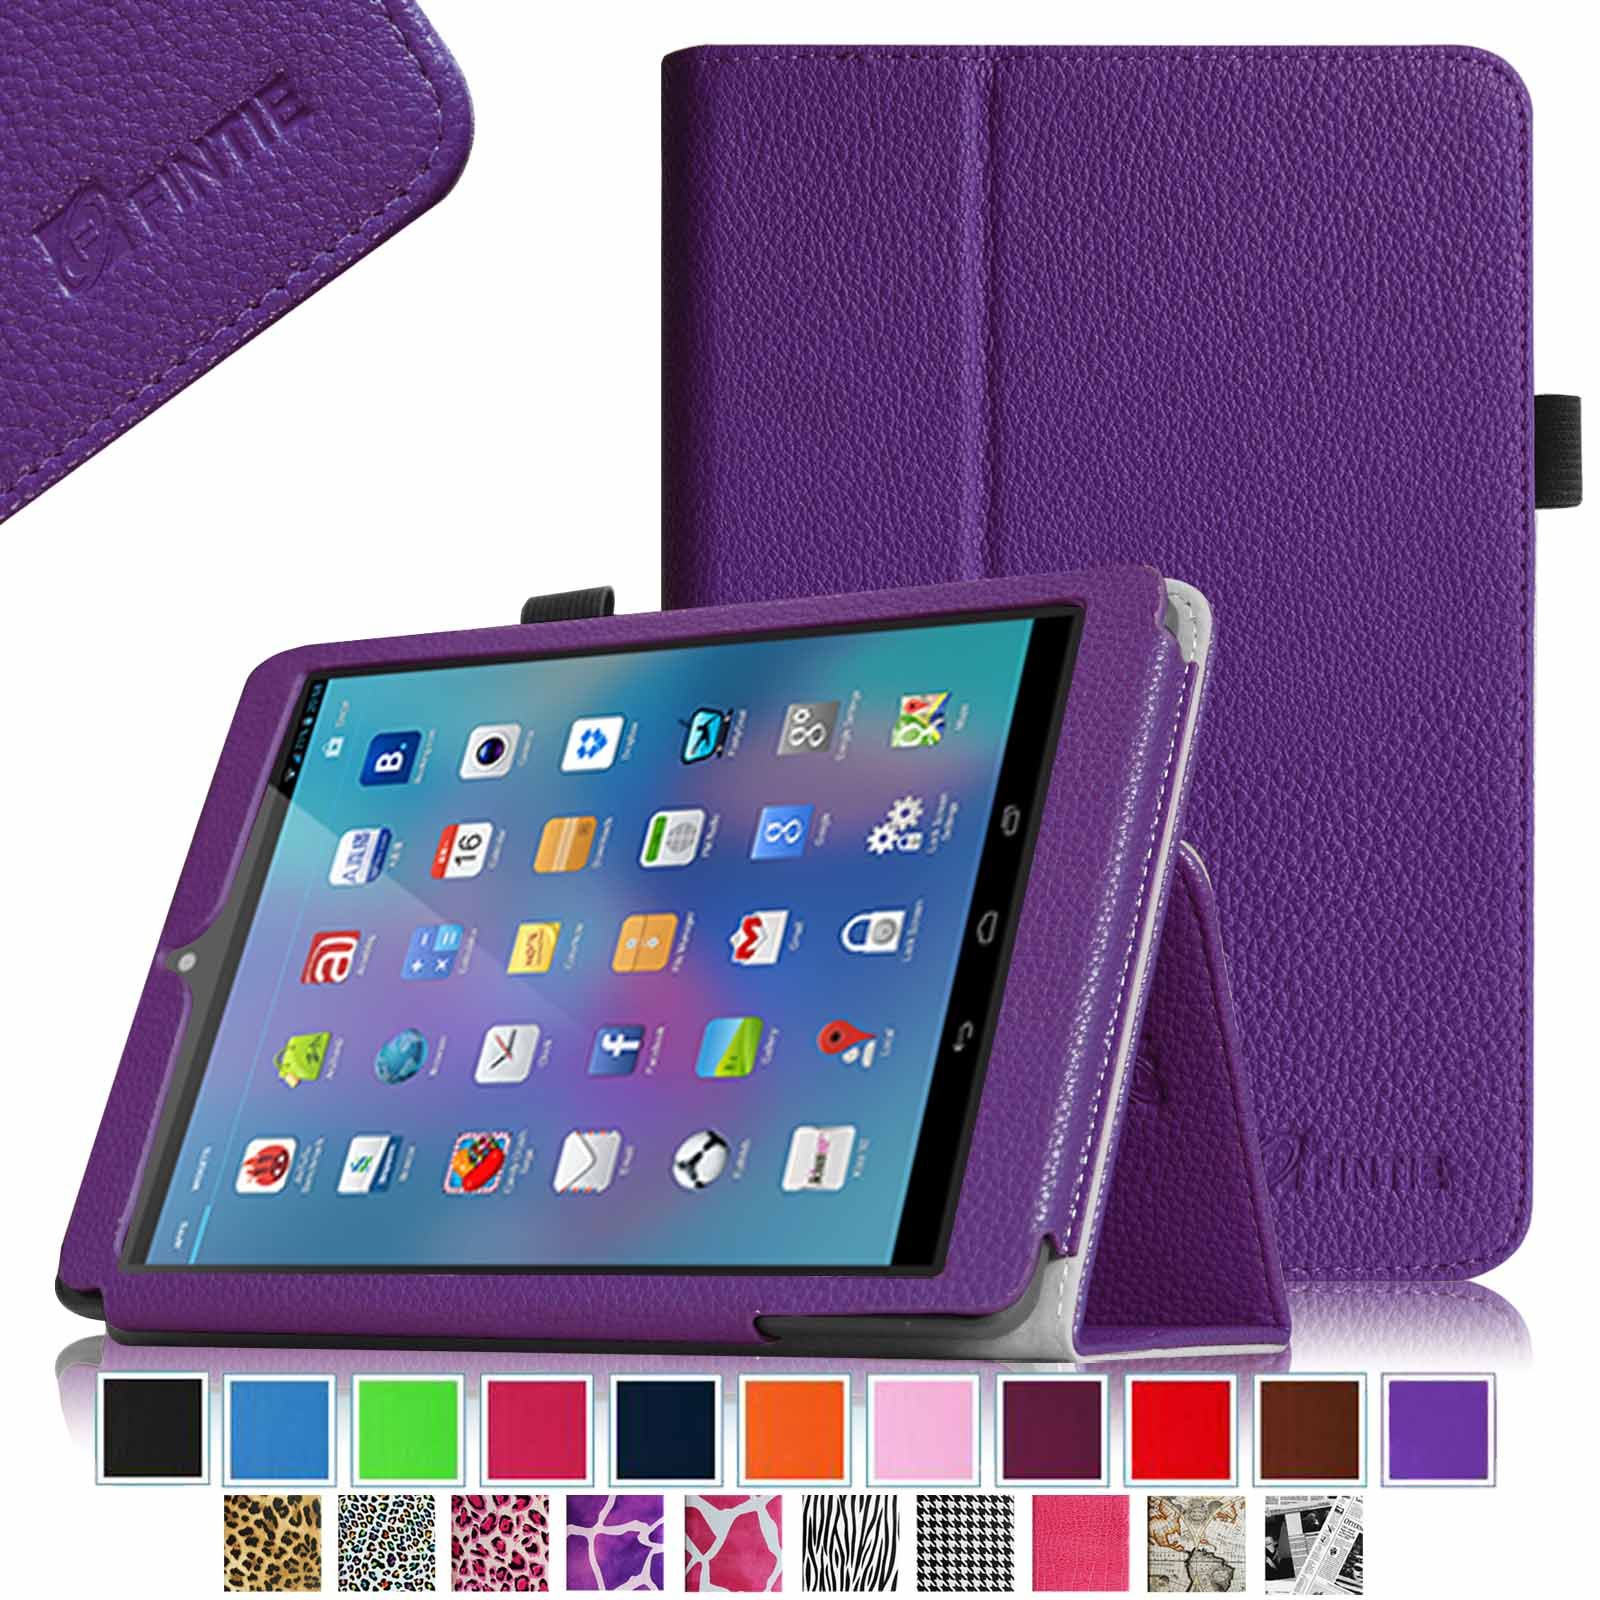 "Fintie Premium PU Leather Case Cover with Stylus Holder For Nextbook 8(NX785QC8G) 7.85"" Android Tablet, Violet"